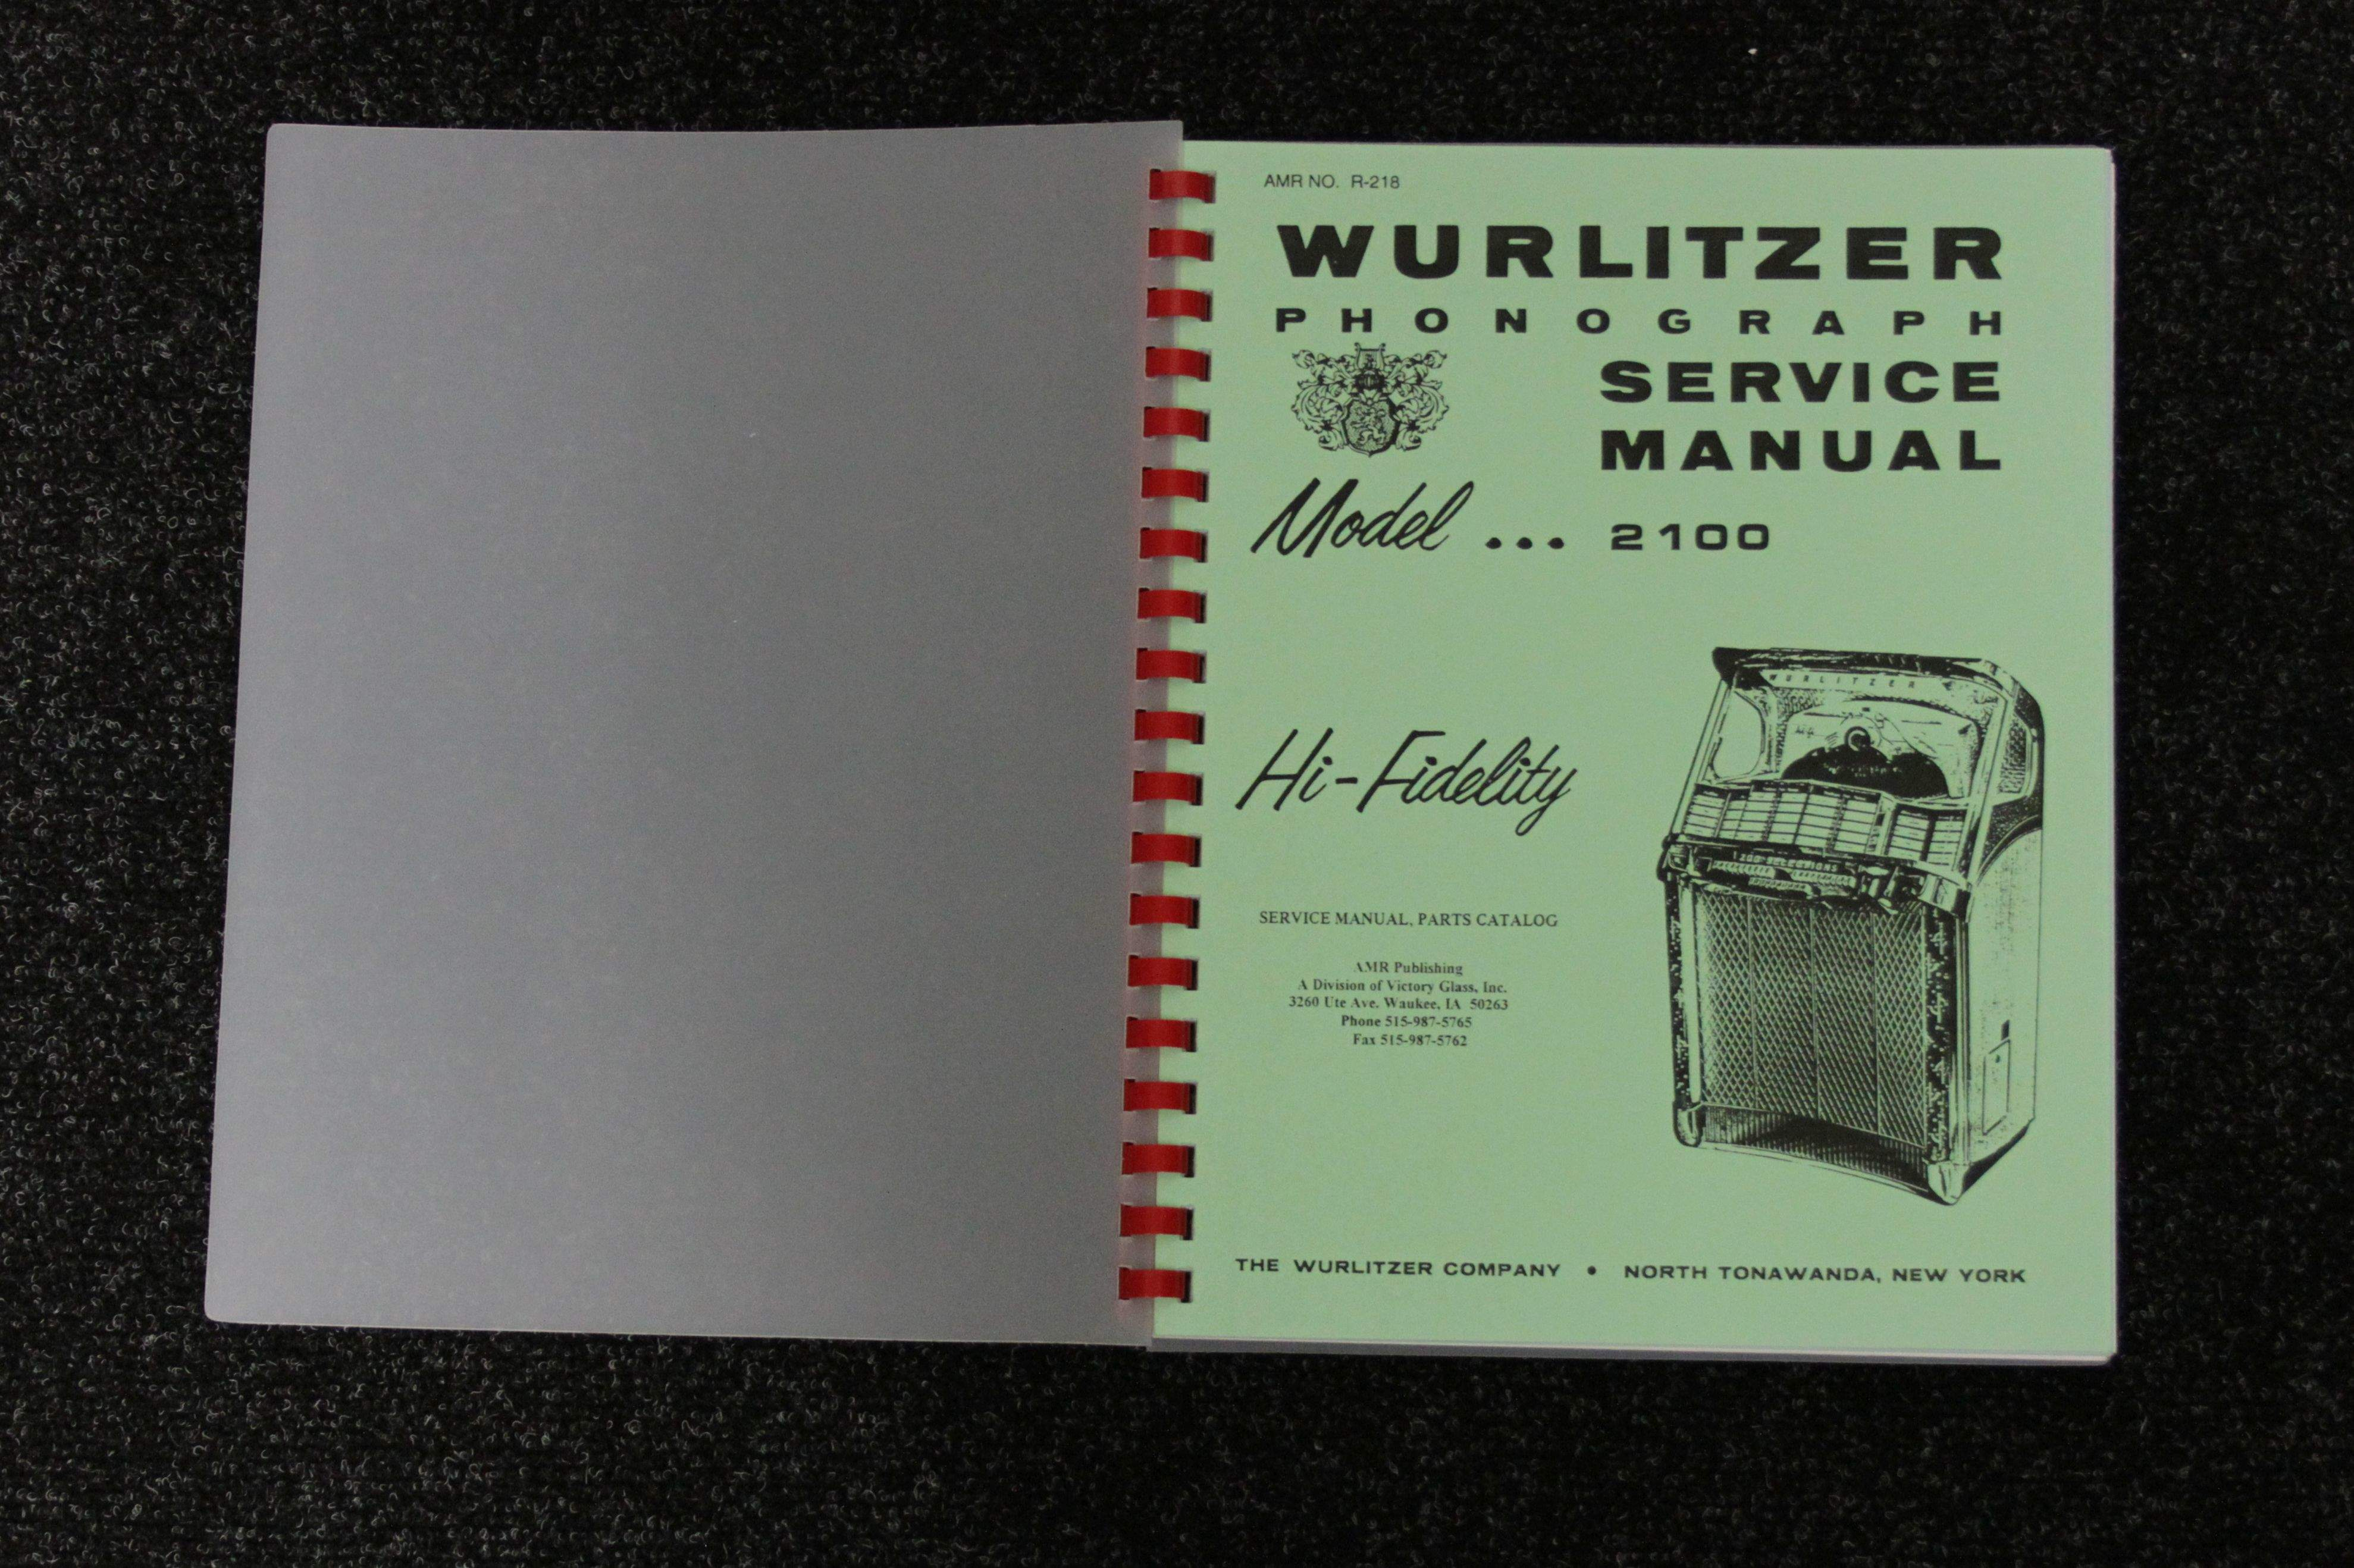 Wurlitzer Service Manual 2100